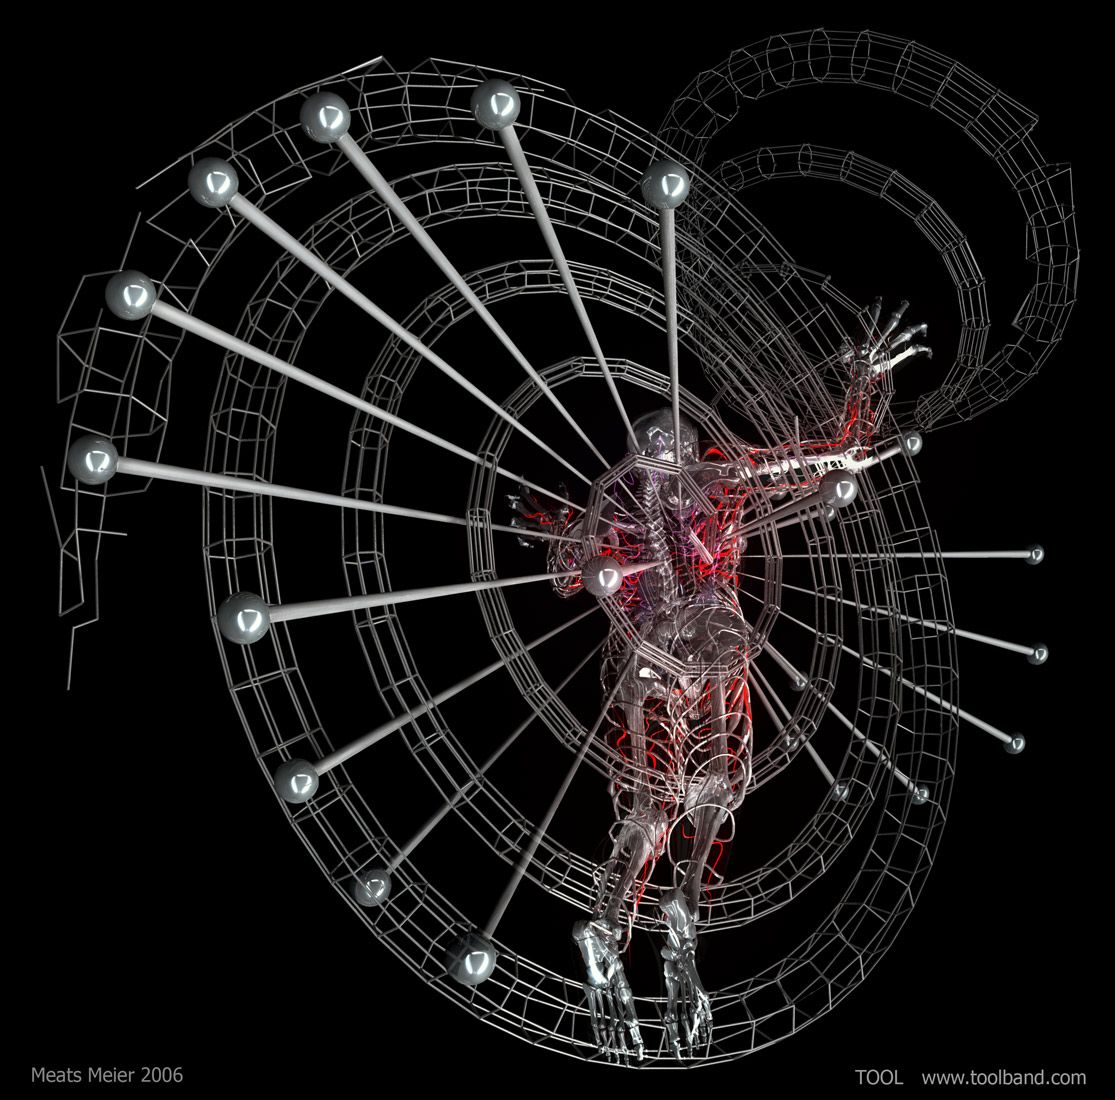 Tool From The Album Of 10 000 Days Tool Tool Artwork